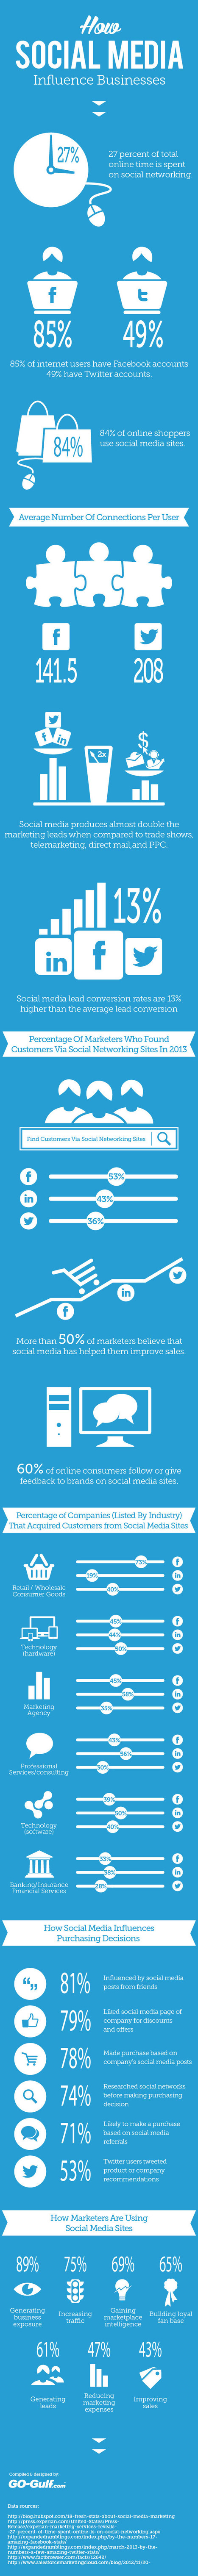 How Social Media Influence Businesses | Great #Infographic from Visual.ly | MarketingHits | Scoop.it